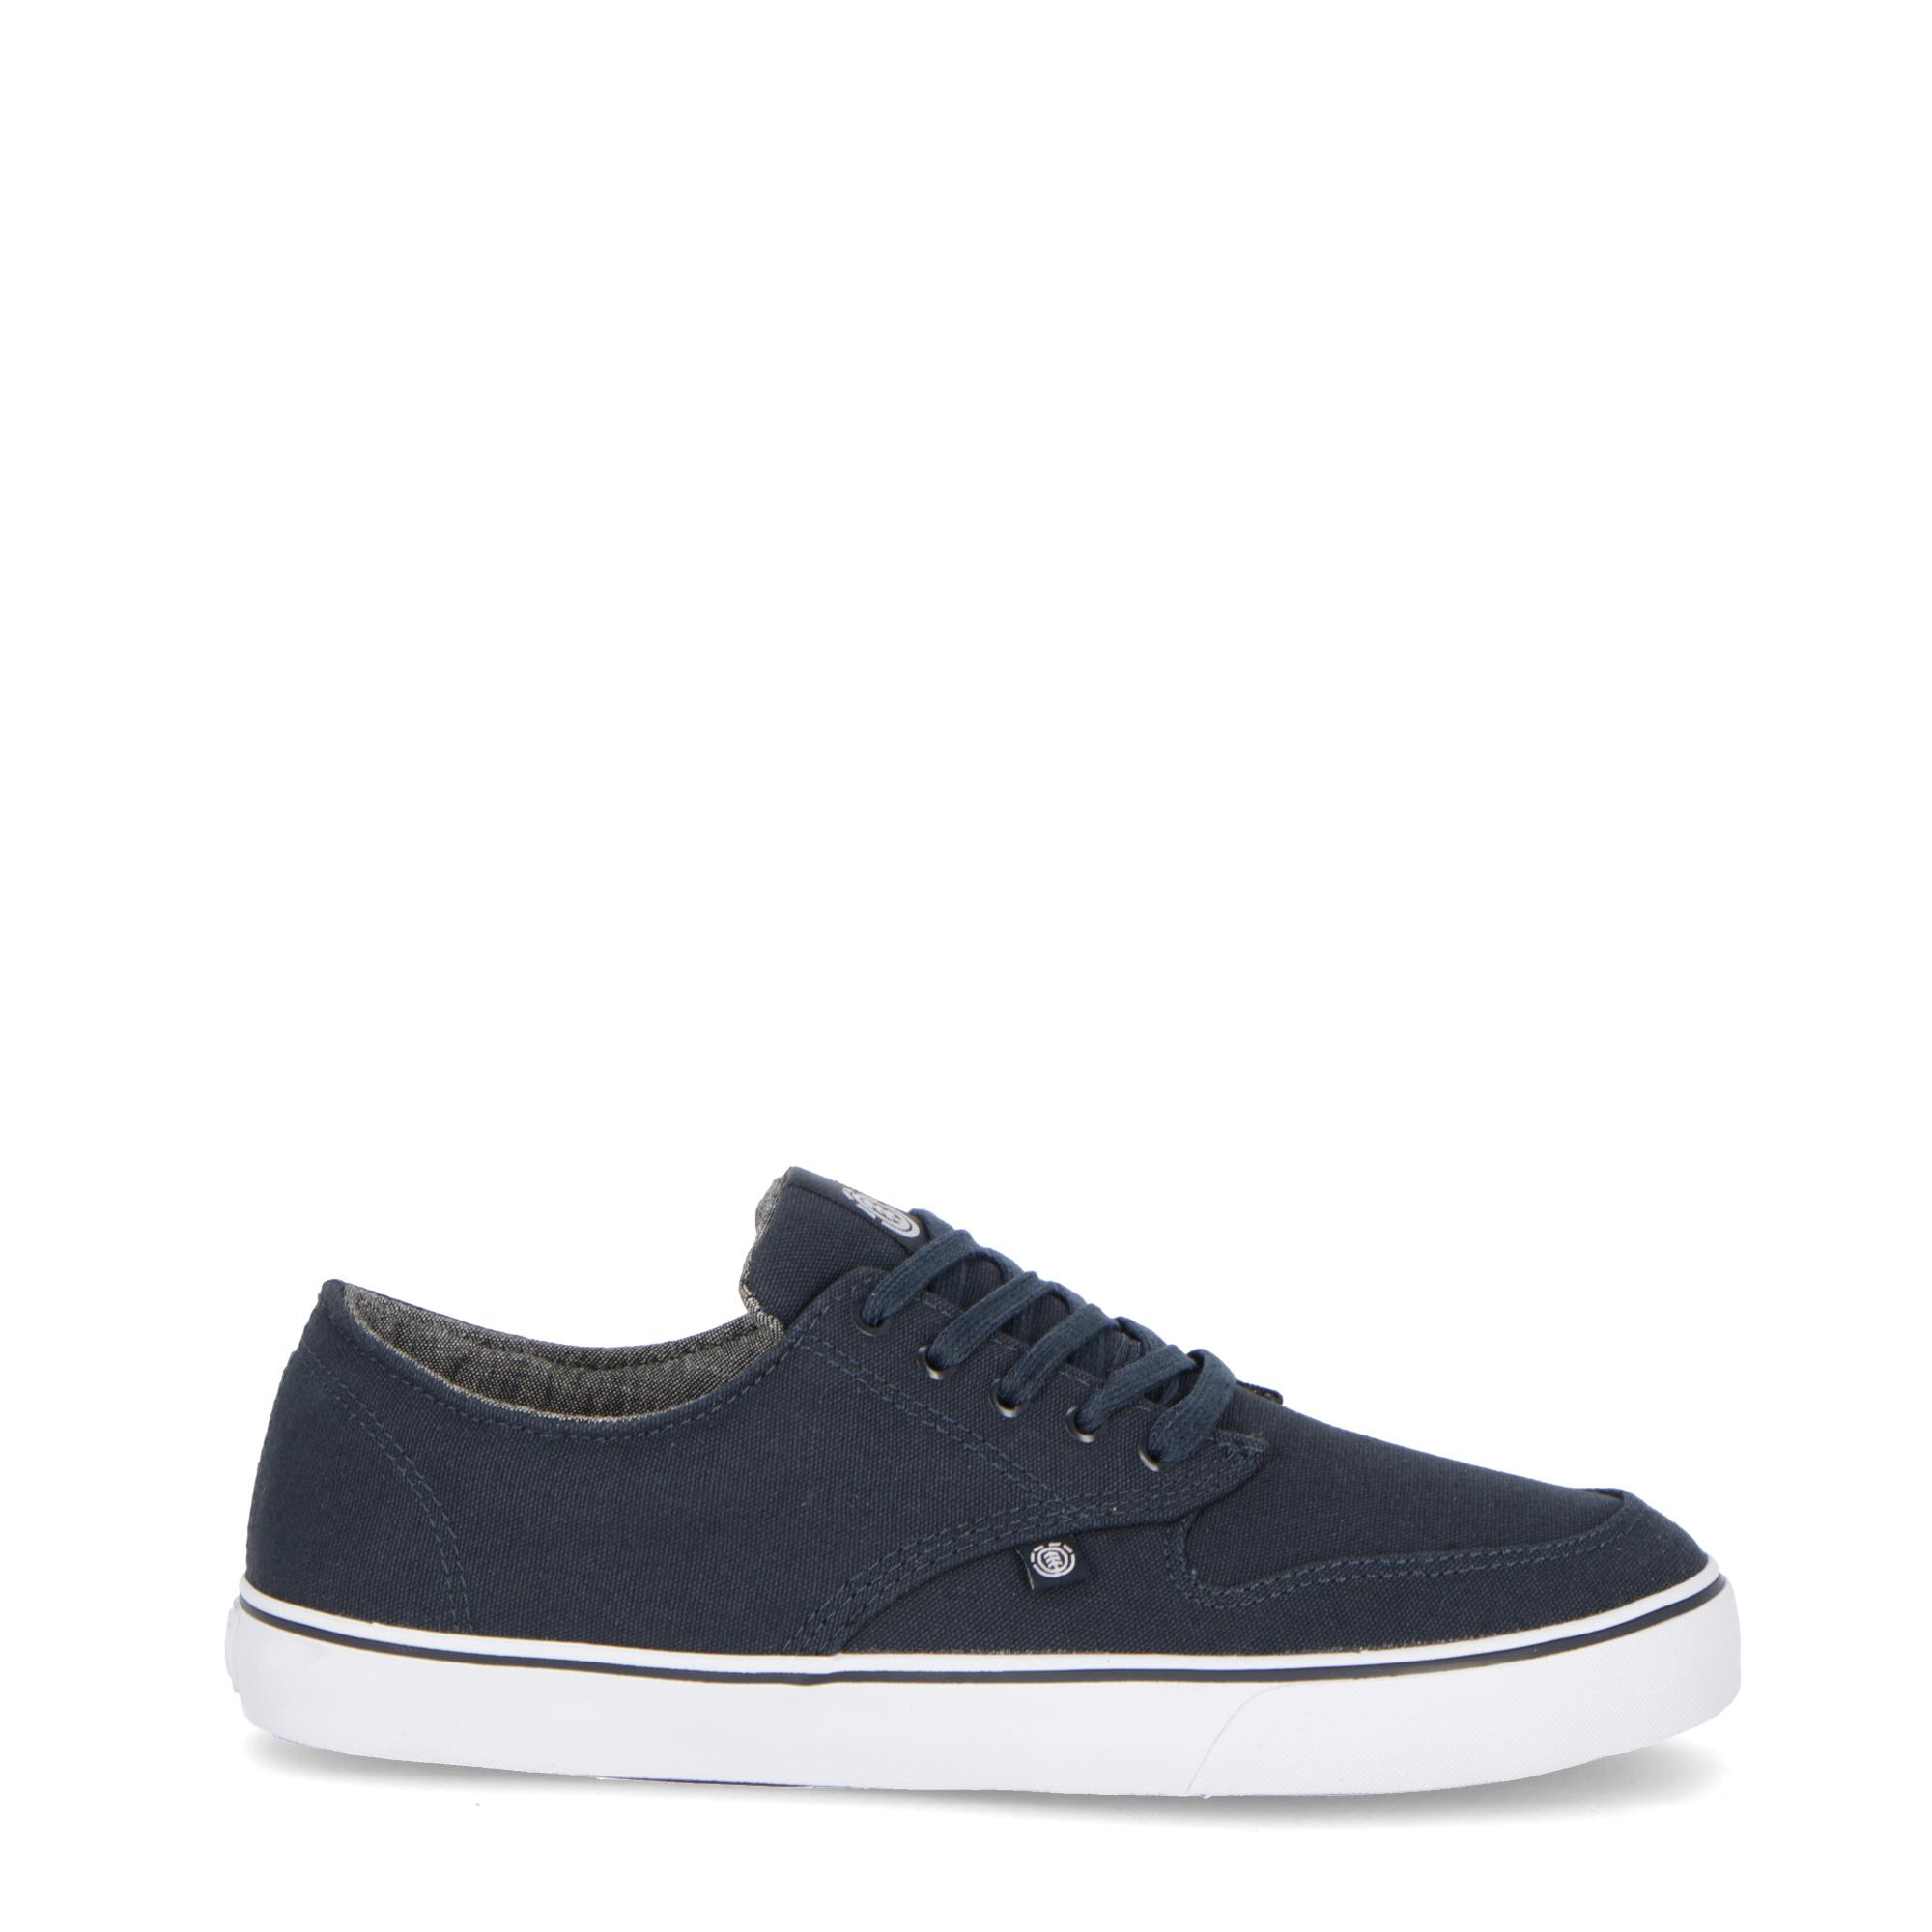 C3 C3 Element CottonTreesse Element Navy Element CottonTreesse C3 Navy Topaz Navy Topaz Topaz zpMSUV